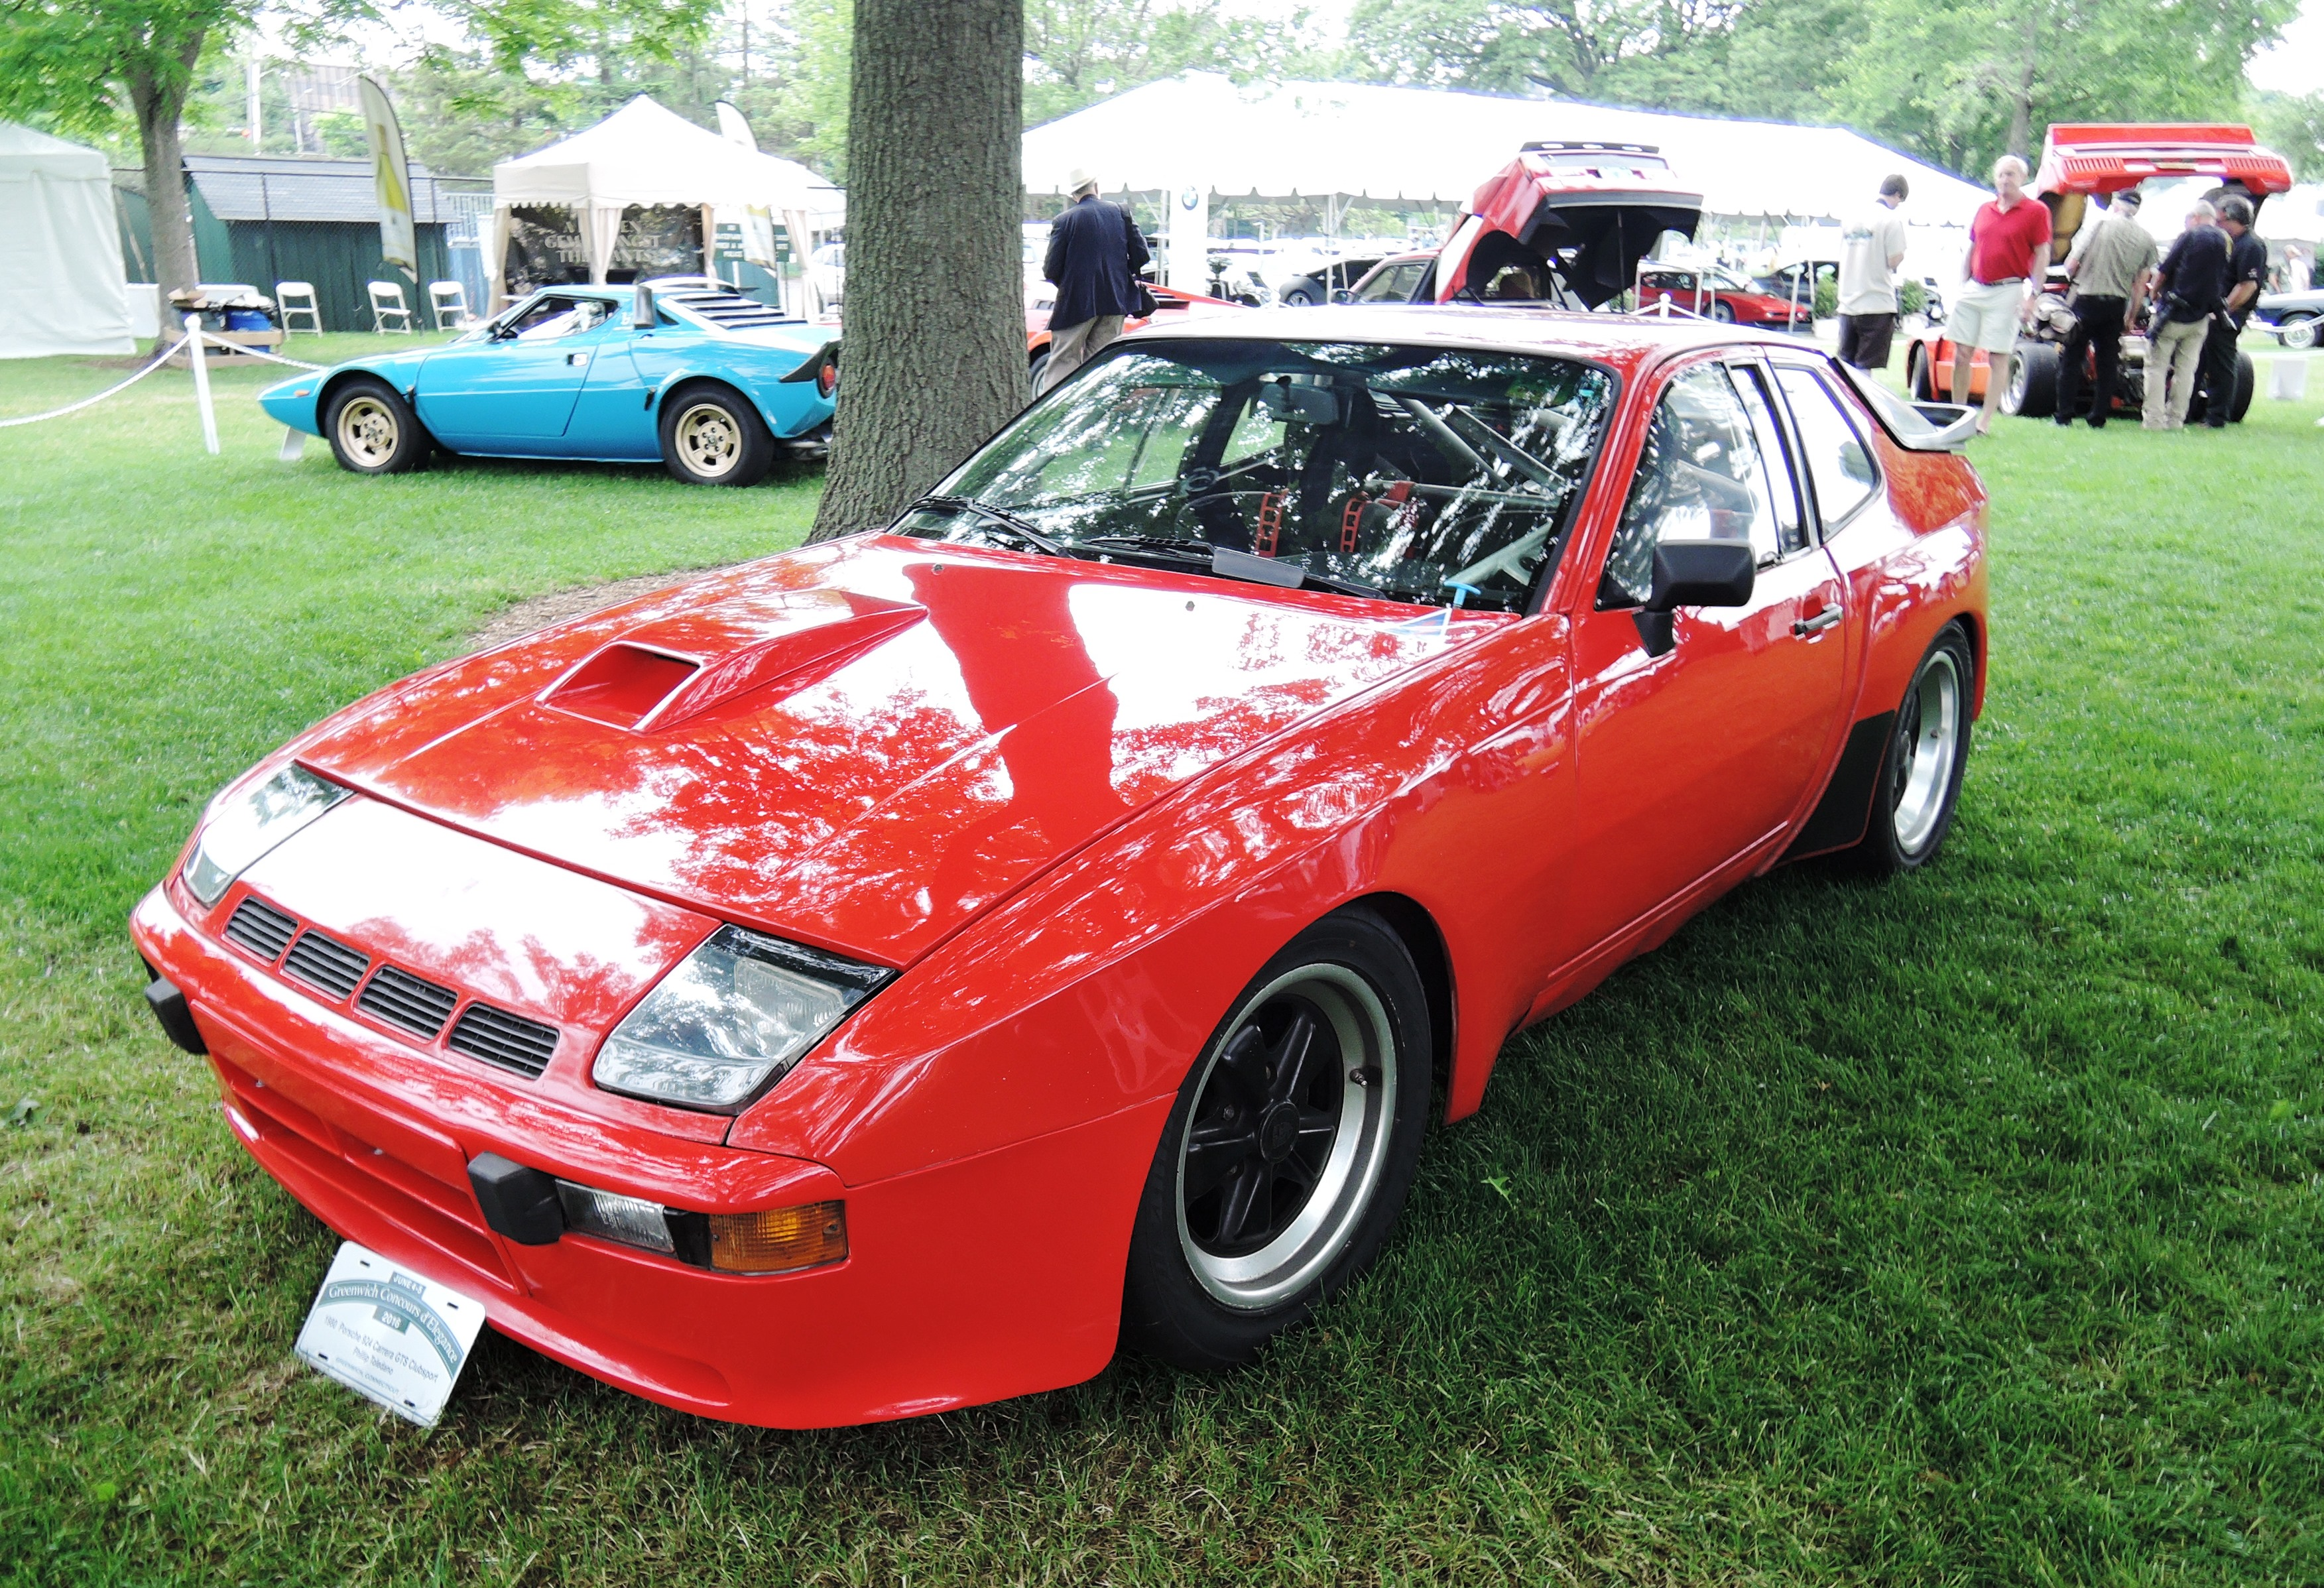 red 1980 Porsche 924 Carrera GTS Clubsport Coupe - Greenwich concours d'elegance